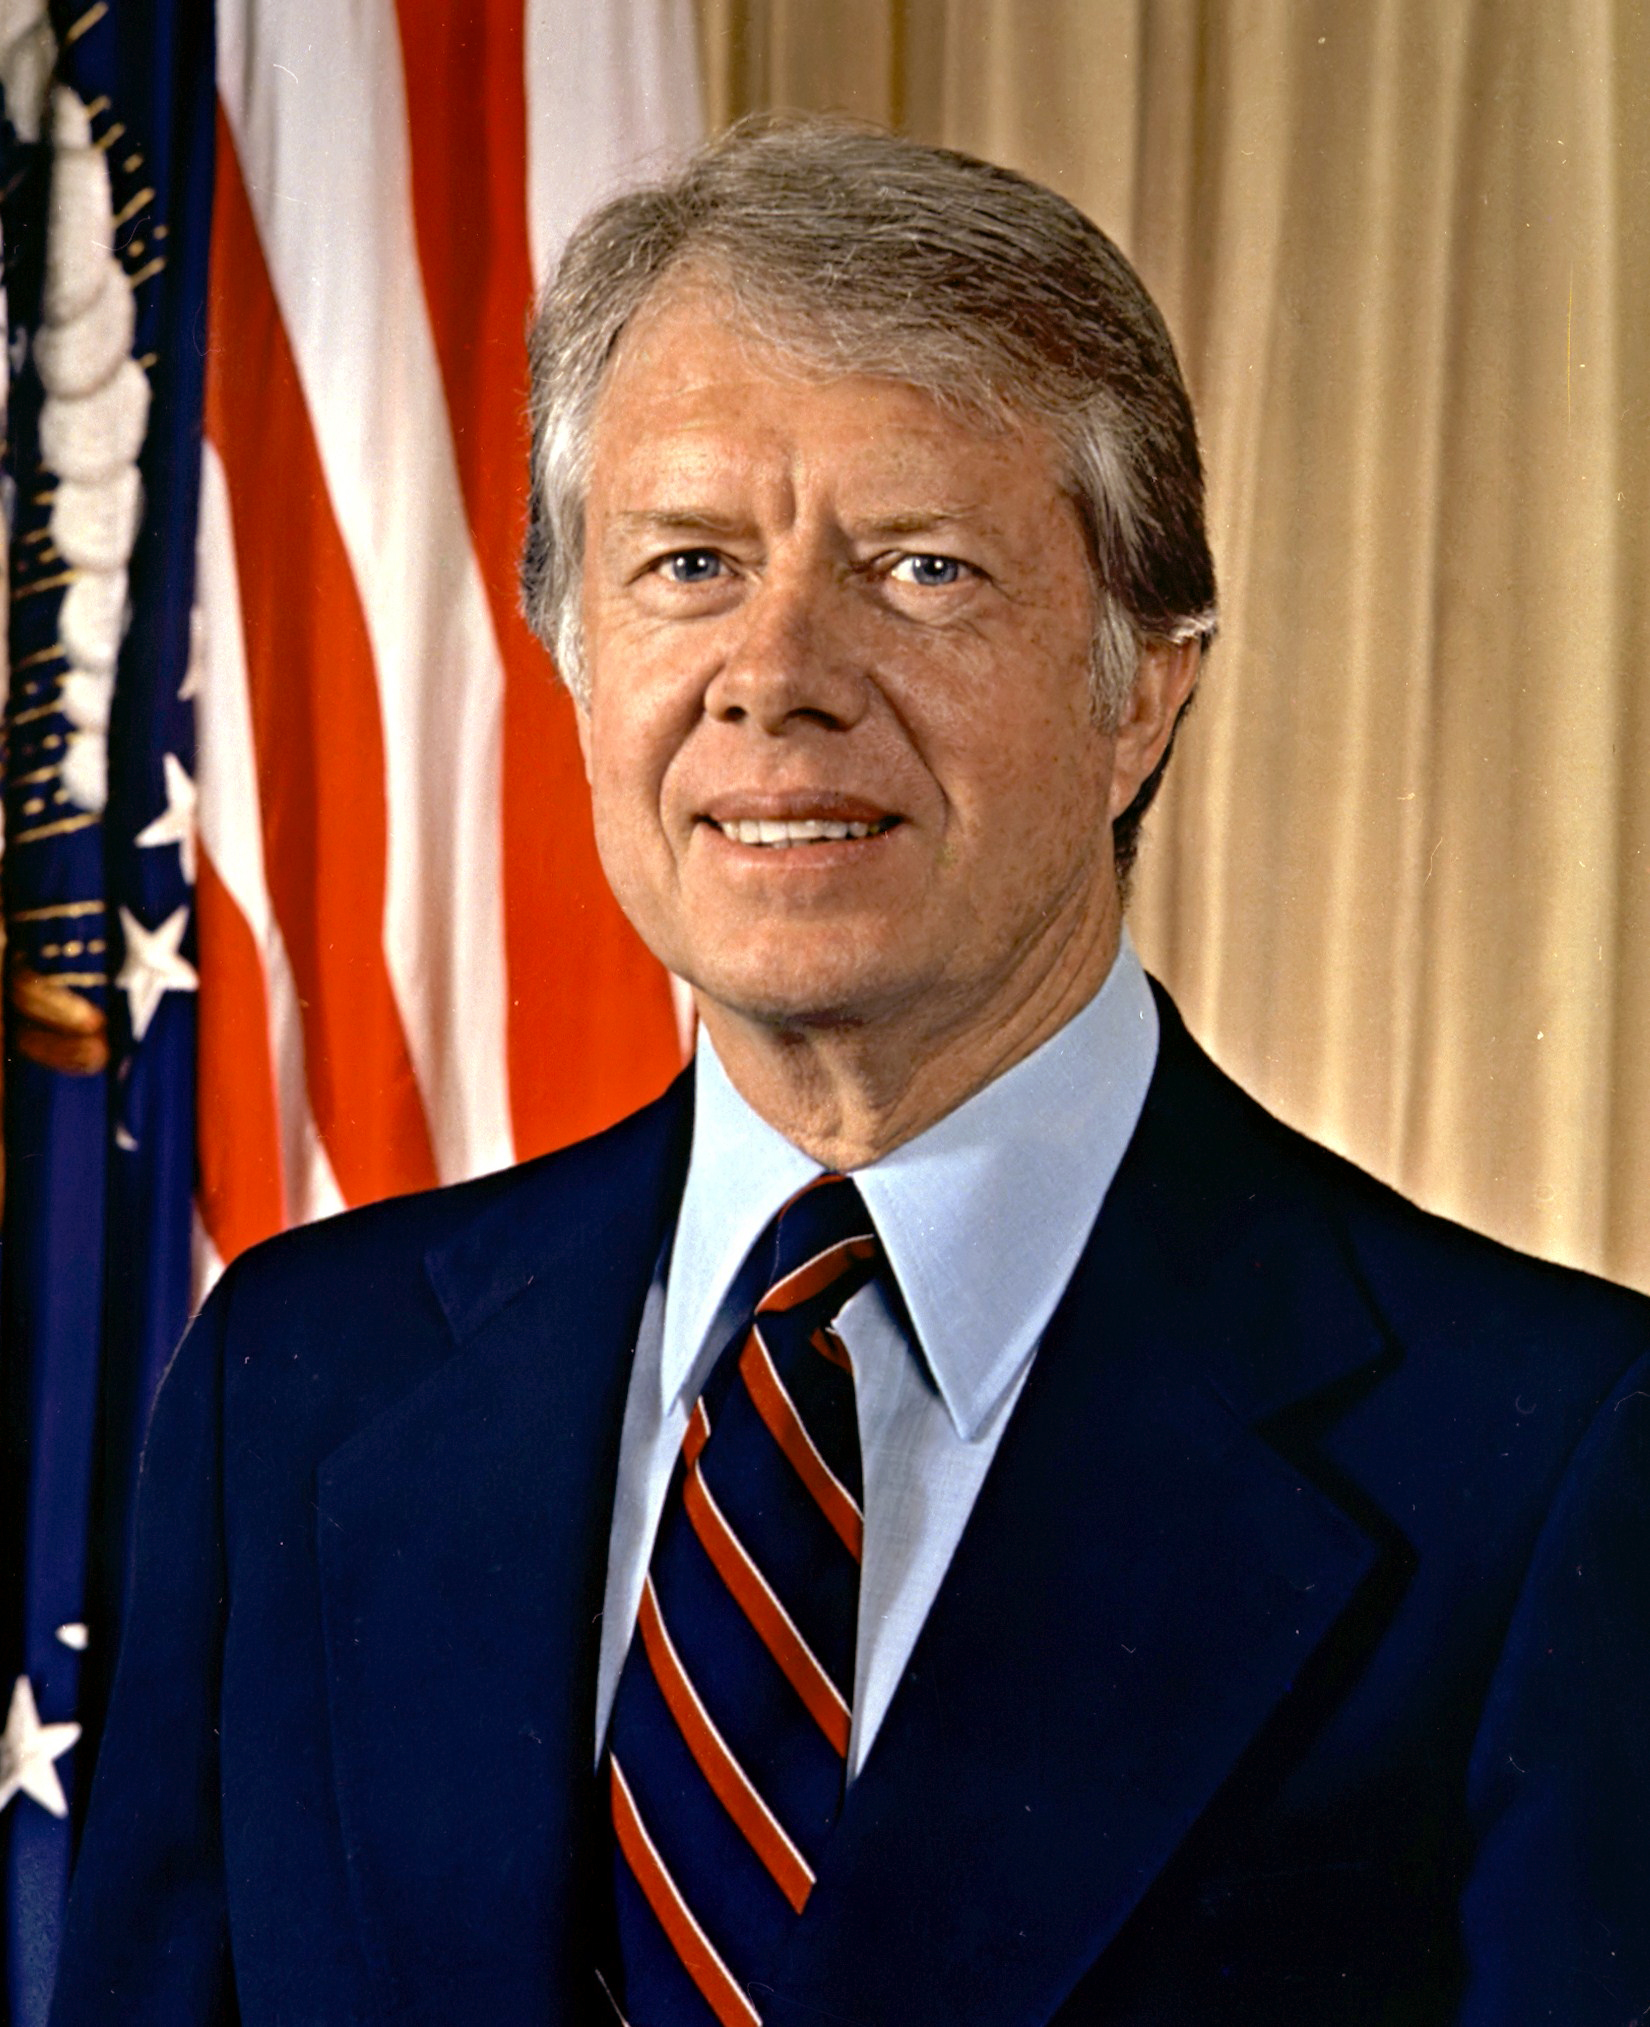 https://upload.wikimedia.org/wikipedia/commons/5/5a/JimmyCarterPortrait2.jpg